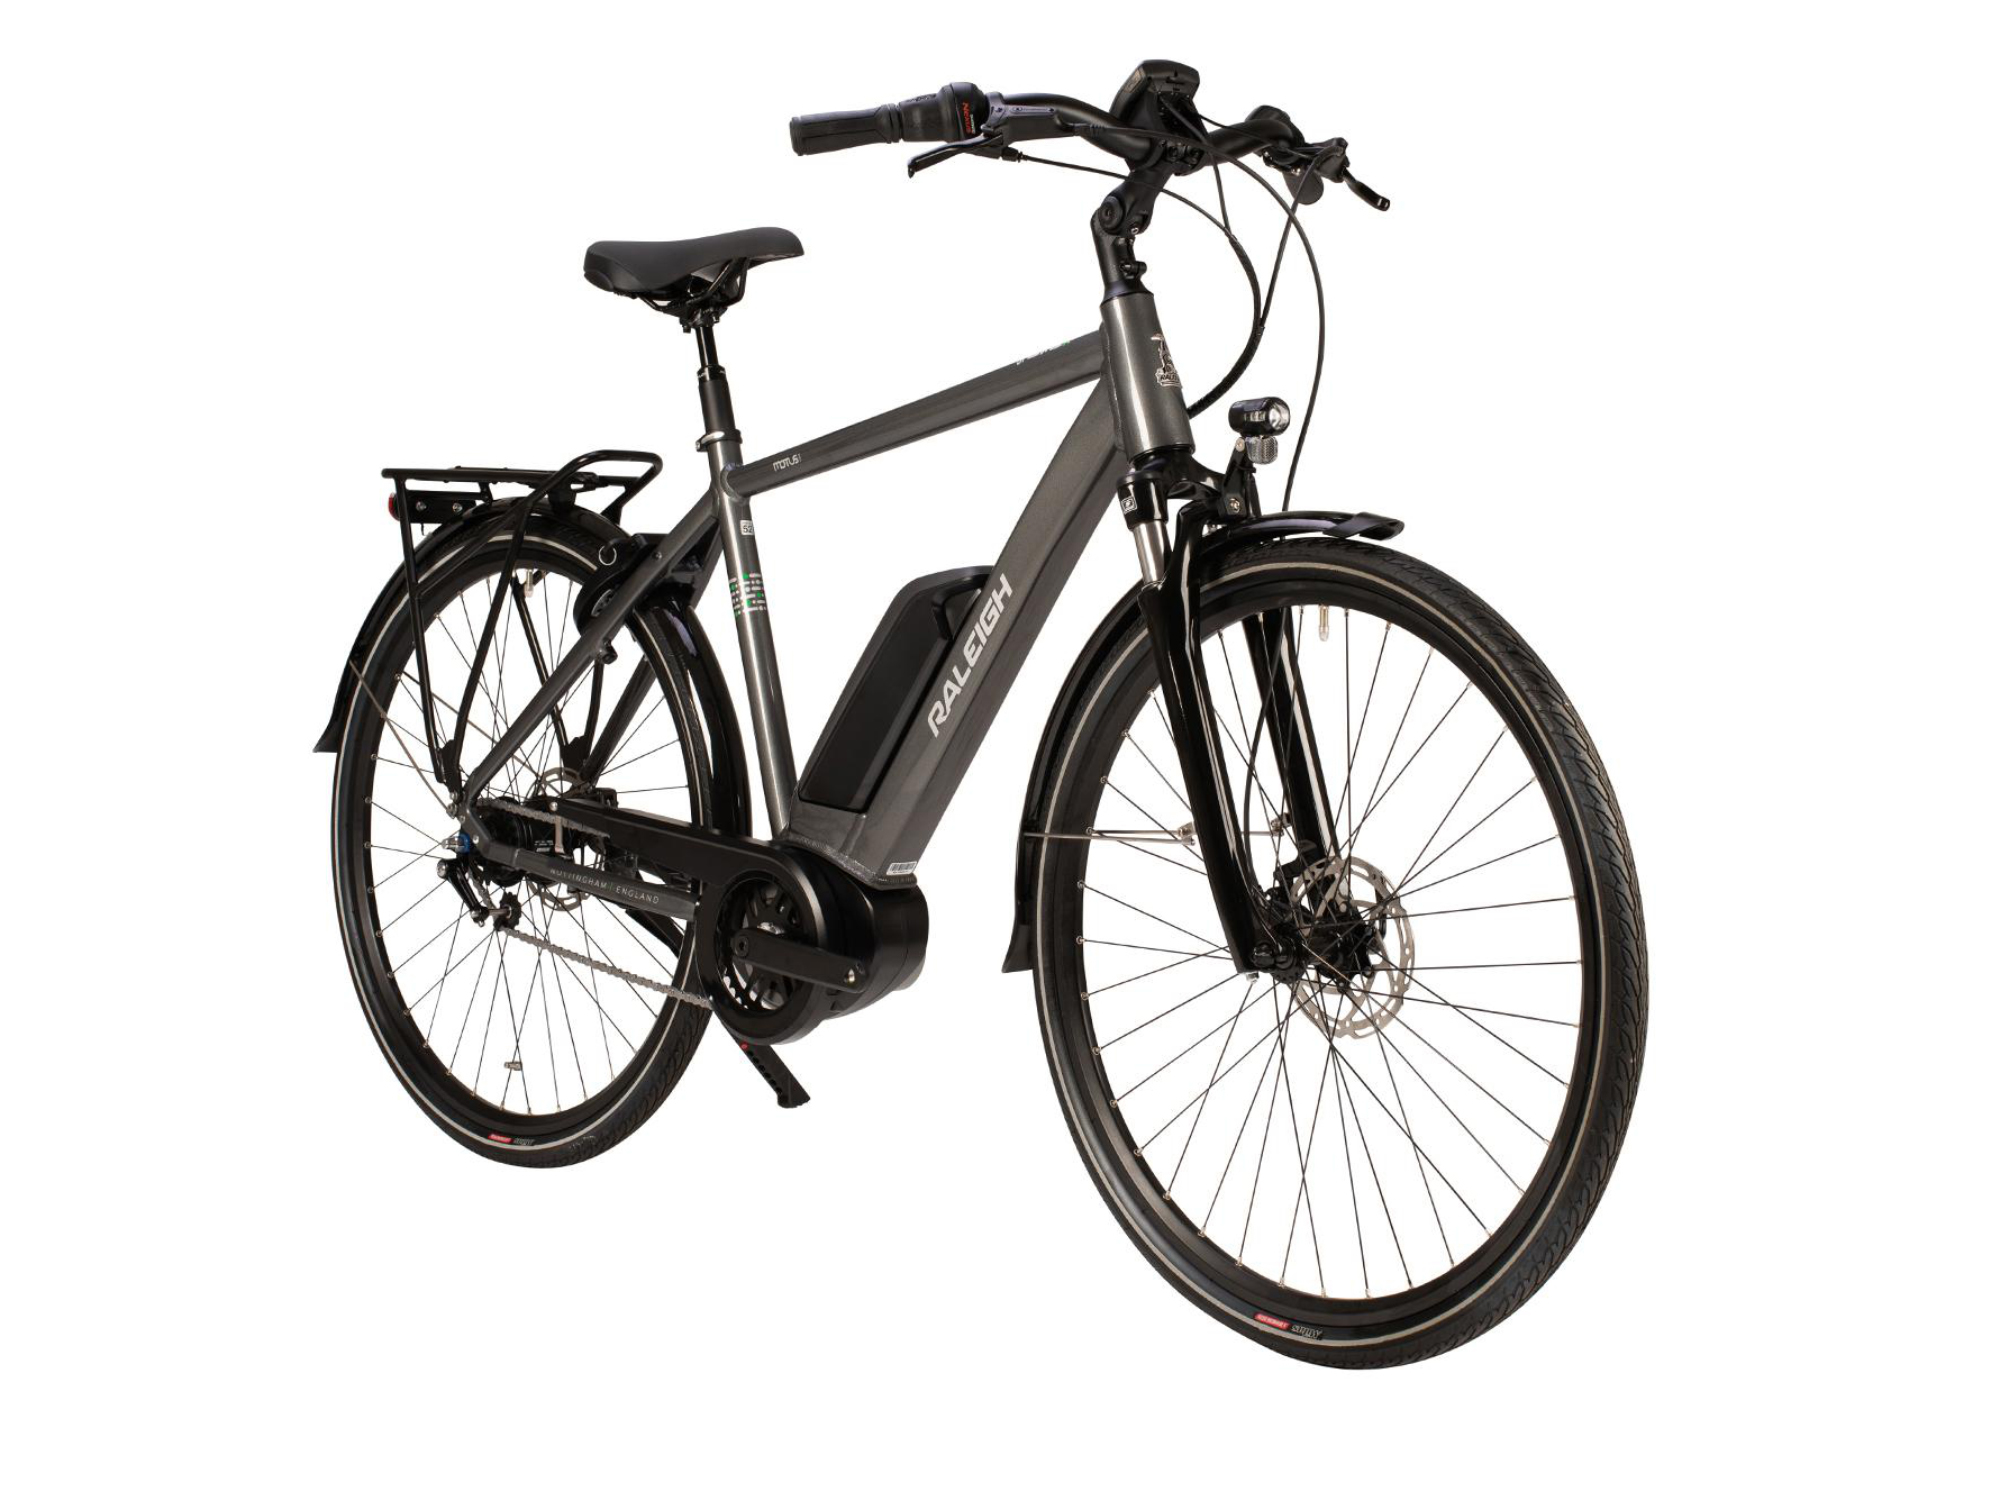 Front view of the Raleigh Motus Tour electric bikewith crossbar frame in grey